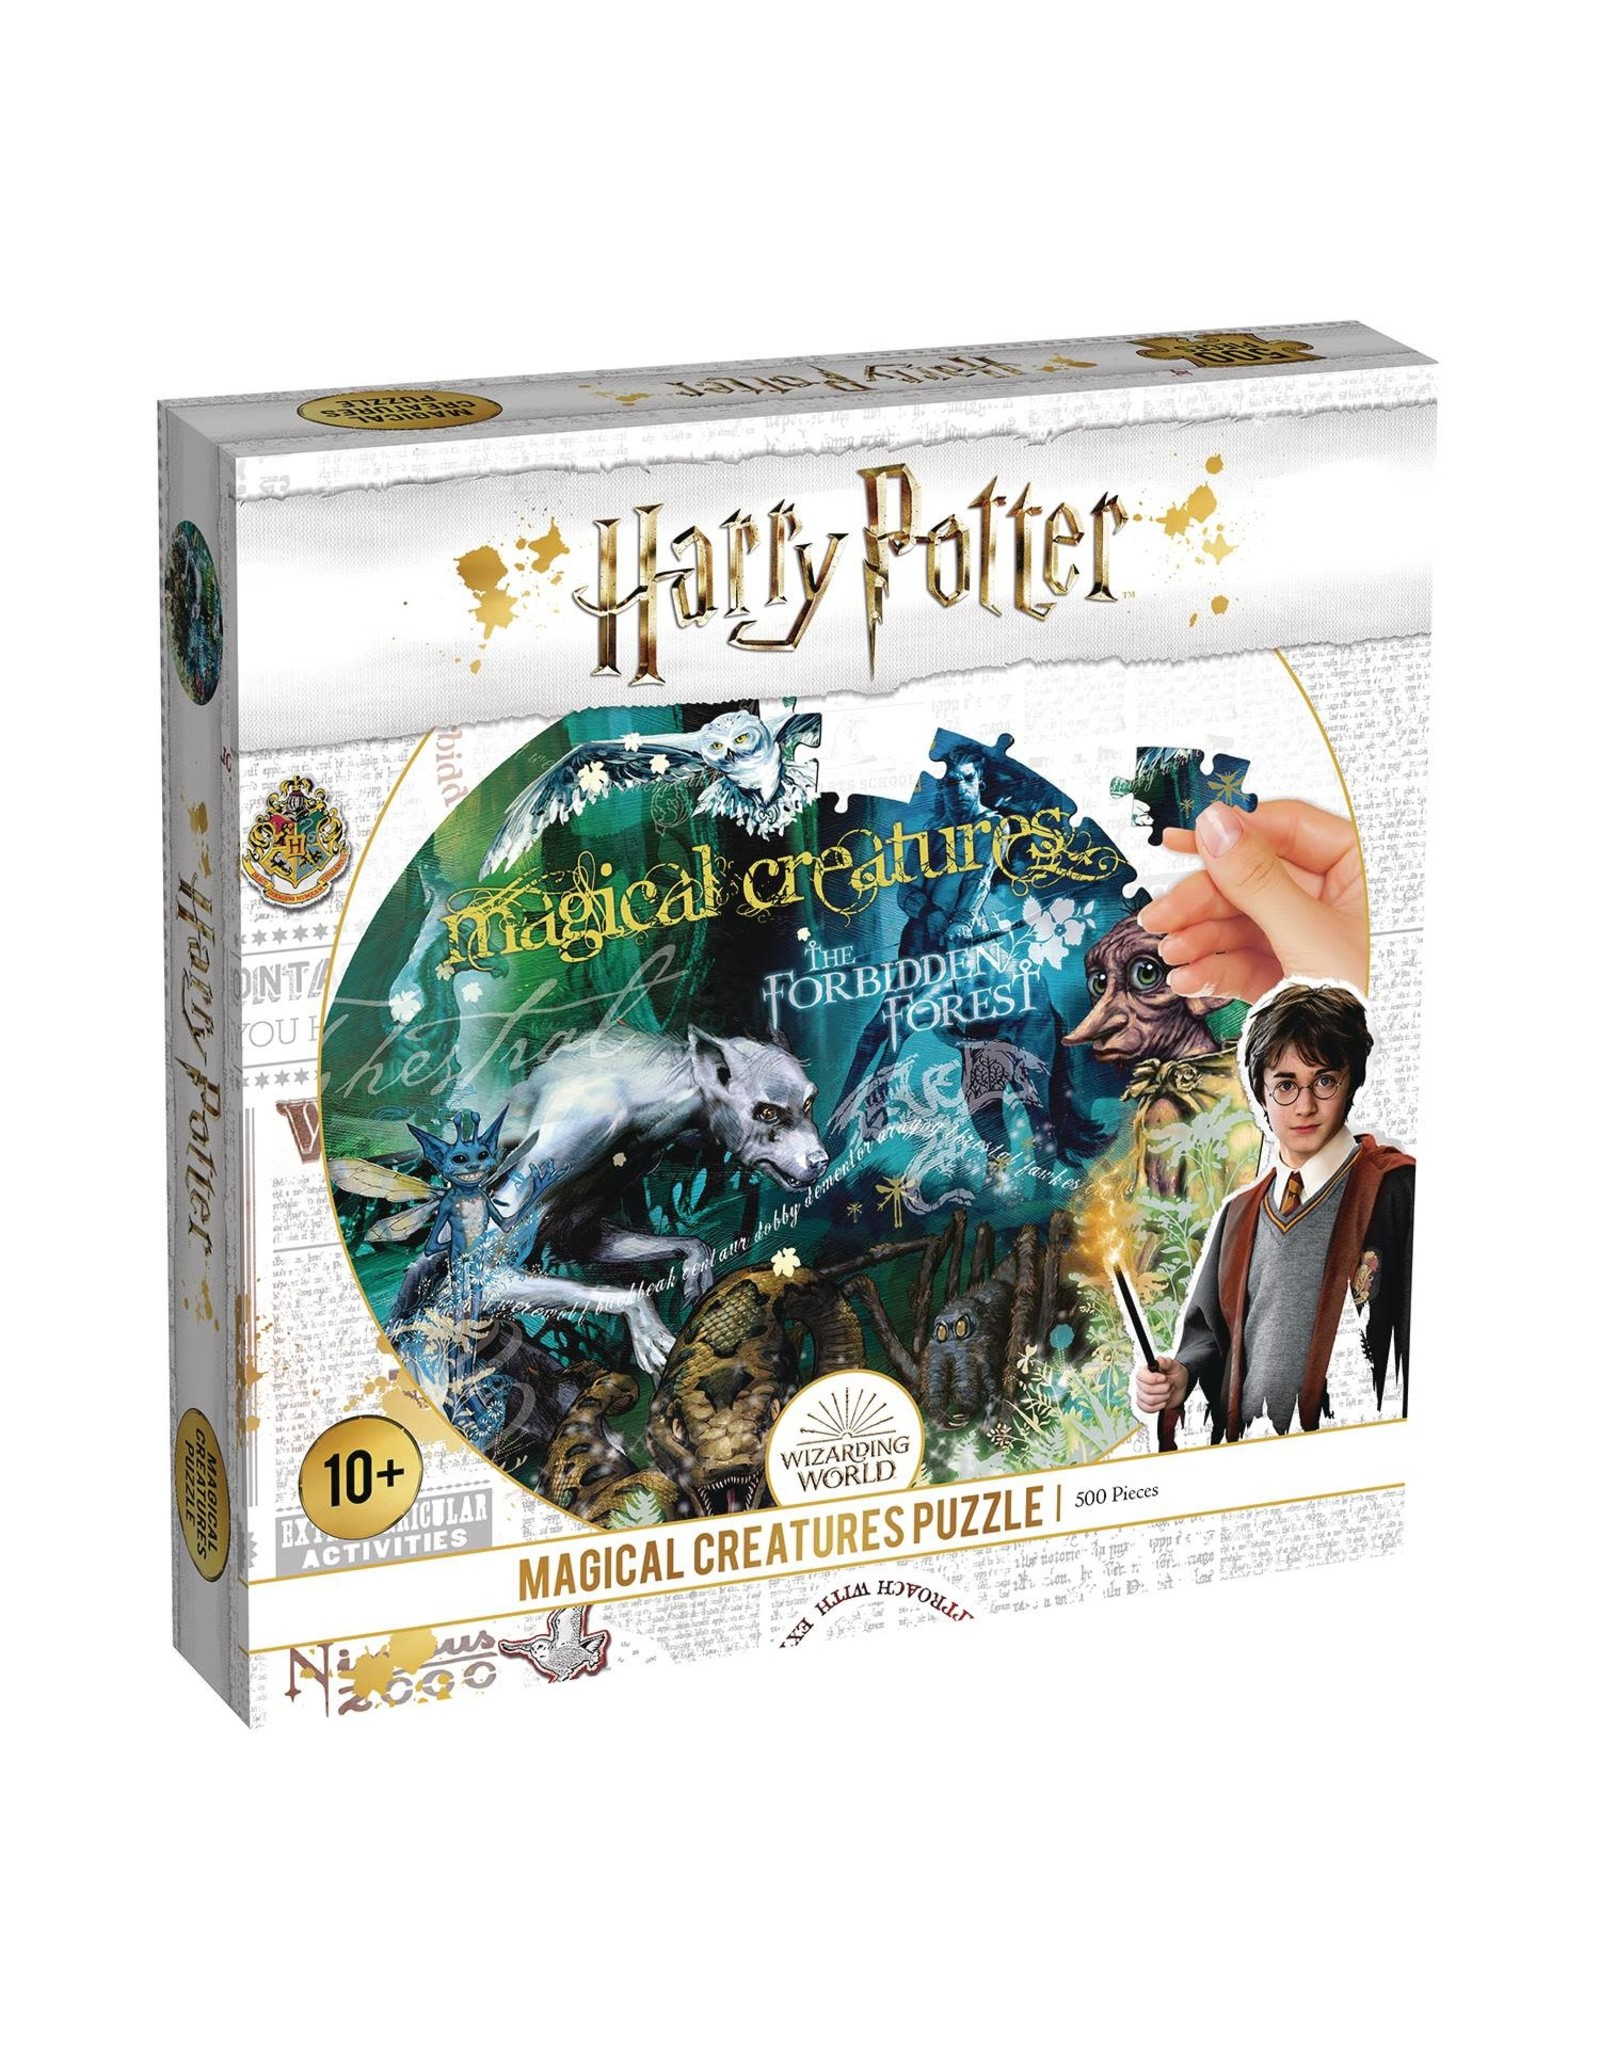 Top Trumps HARRY POTTER MAGICAL CREATURES 500 PC PUZZLE (C: 1-1-2)